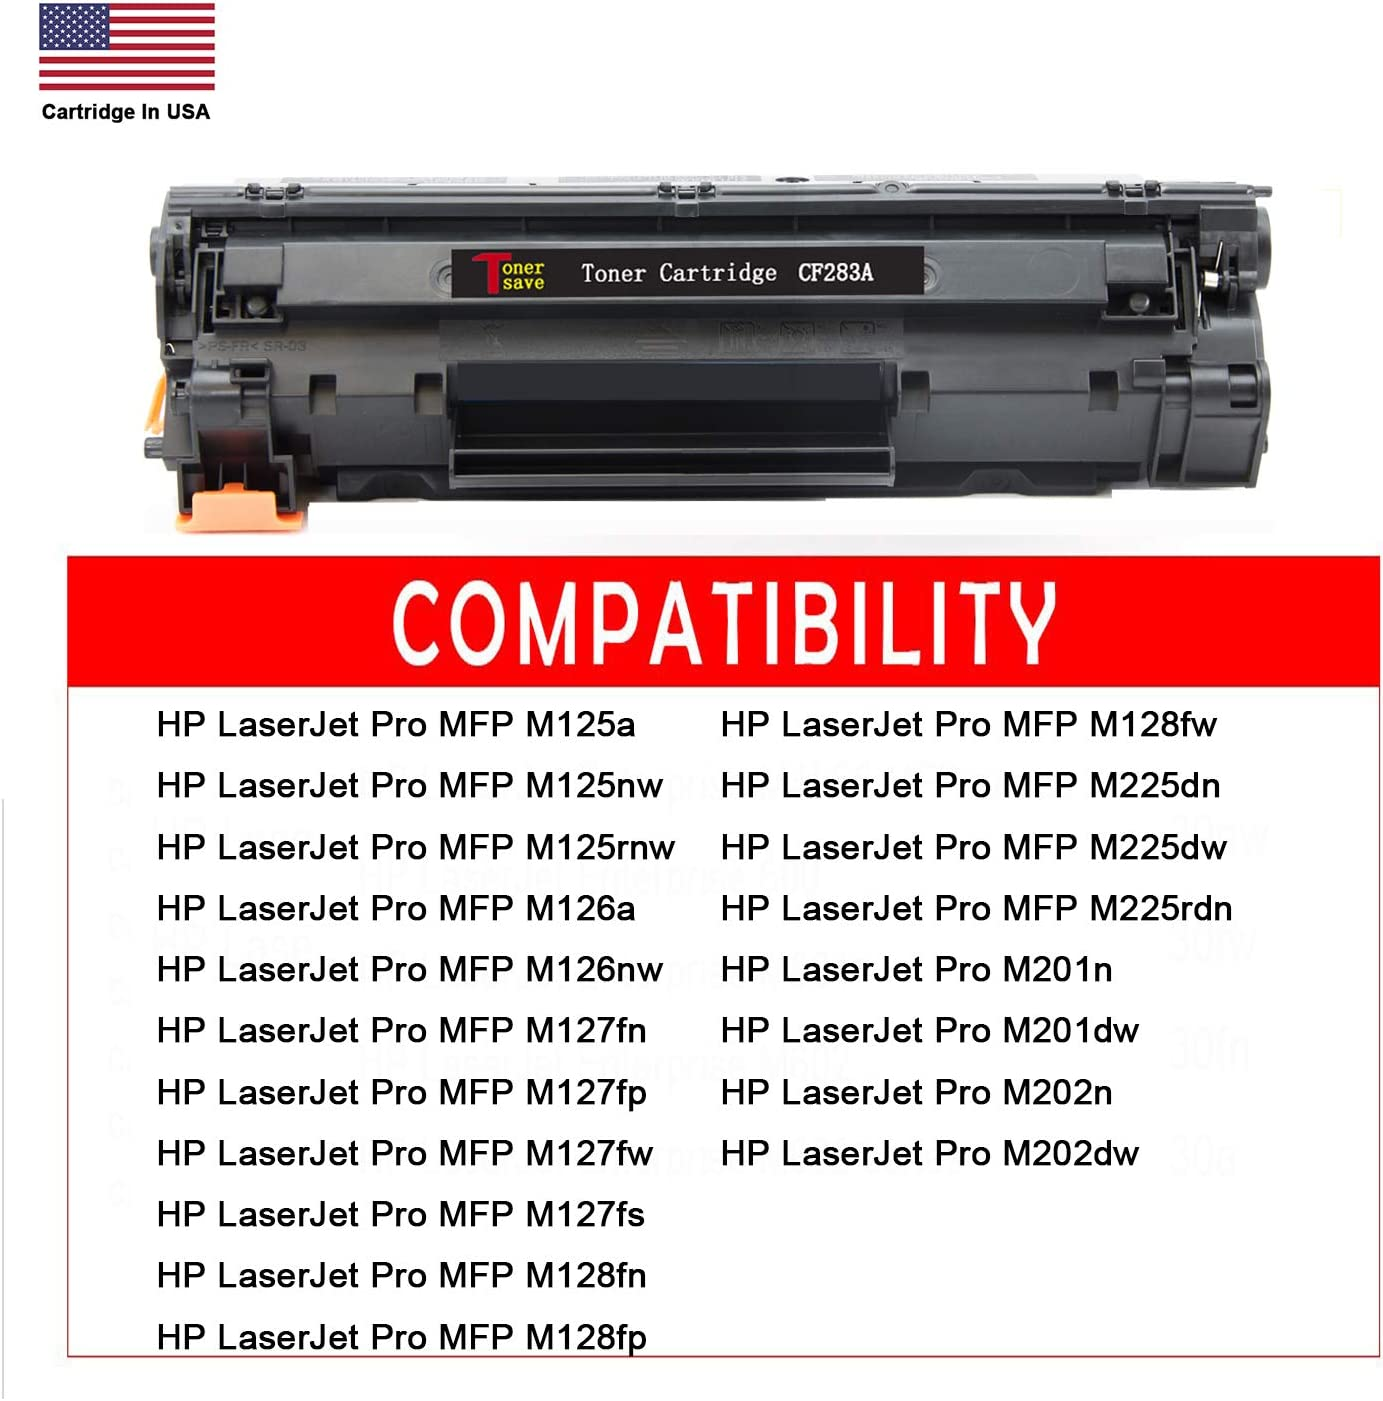 TonerSave Compatible Toner Cartridge Replacement for HP 83A CF283A to use with Laserjet Pro MFP M125nw M201dw M225dw M201n M125a M127fn M127fw, Black 2-Packs